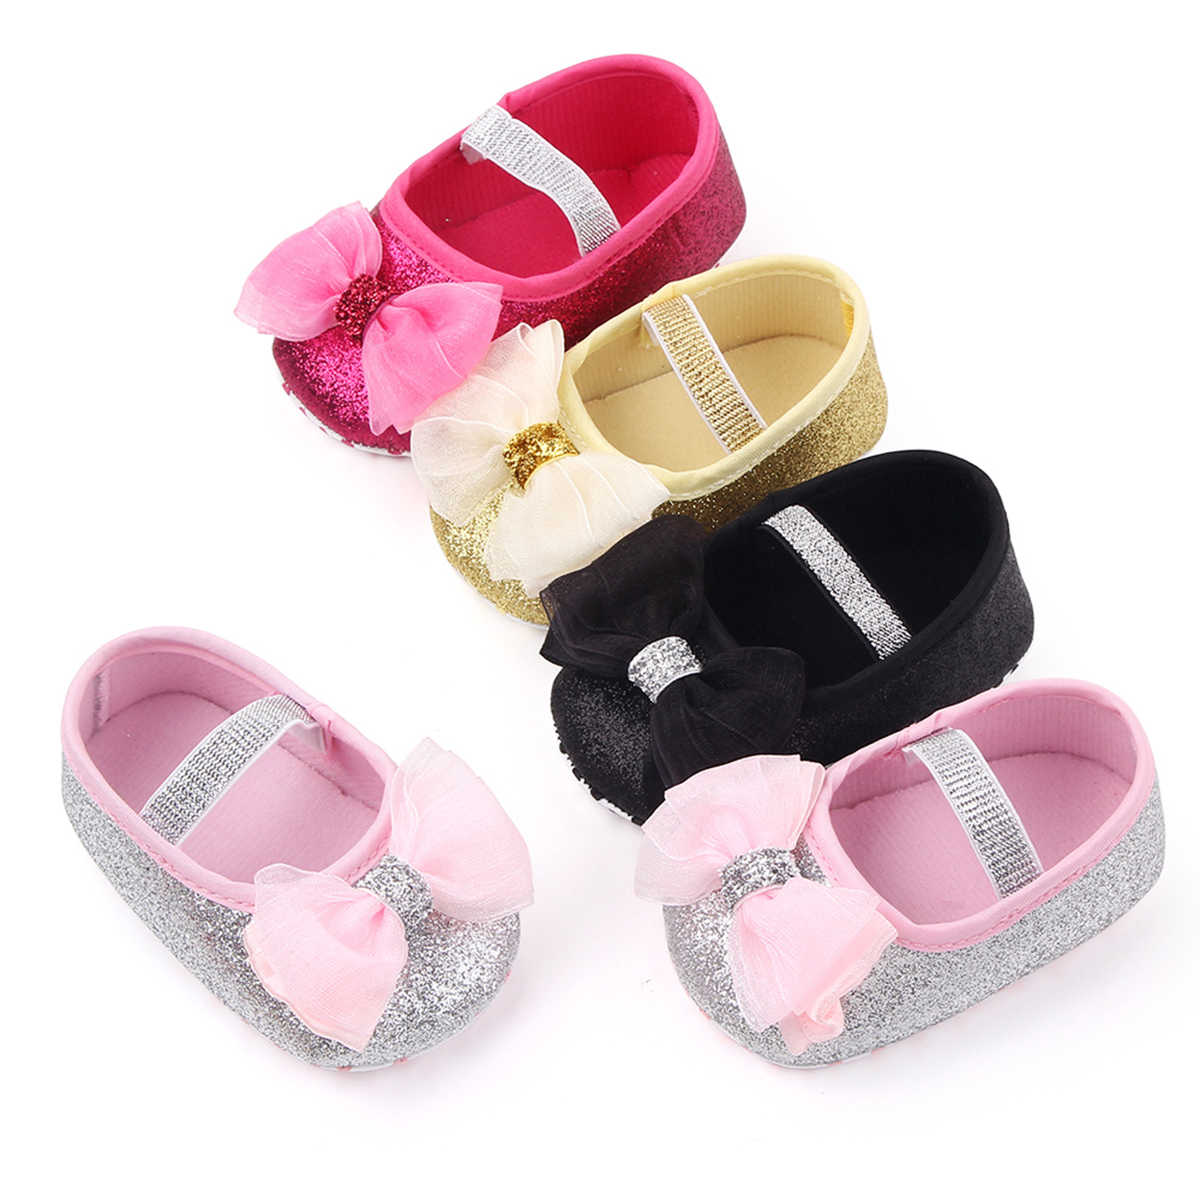 Infant Newborn Baby Girls  Spring Summer Autumn Flats Glitter Bowknot Princess Dress Shoes No-Slip First Walkers